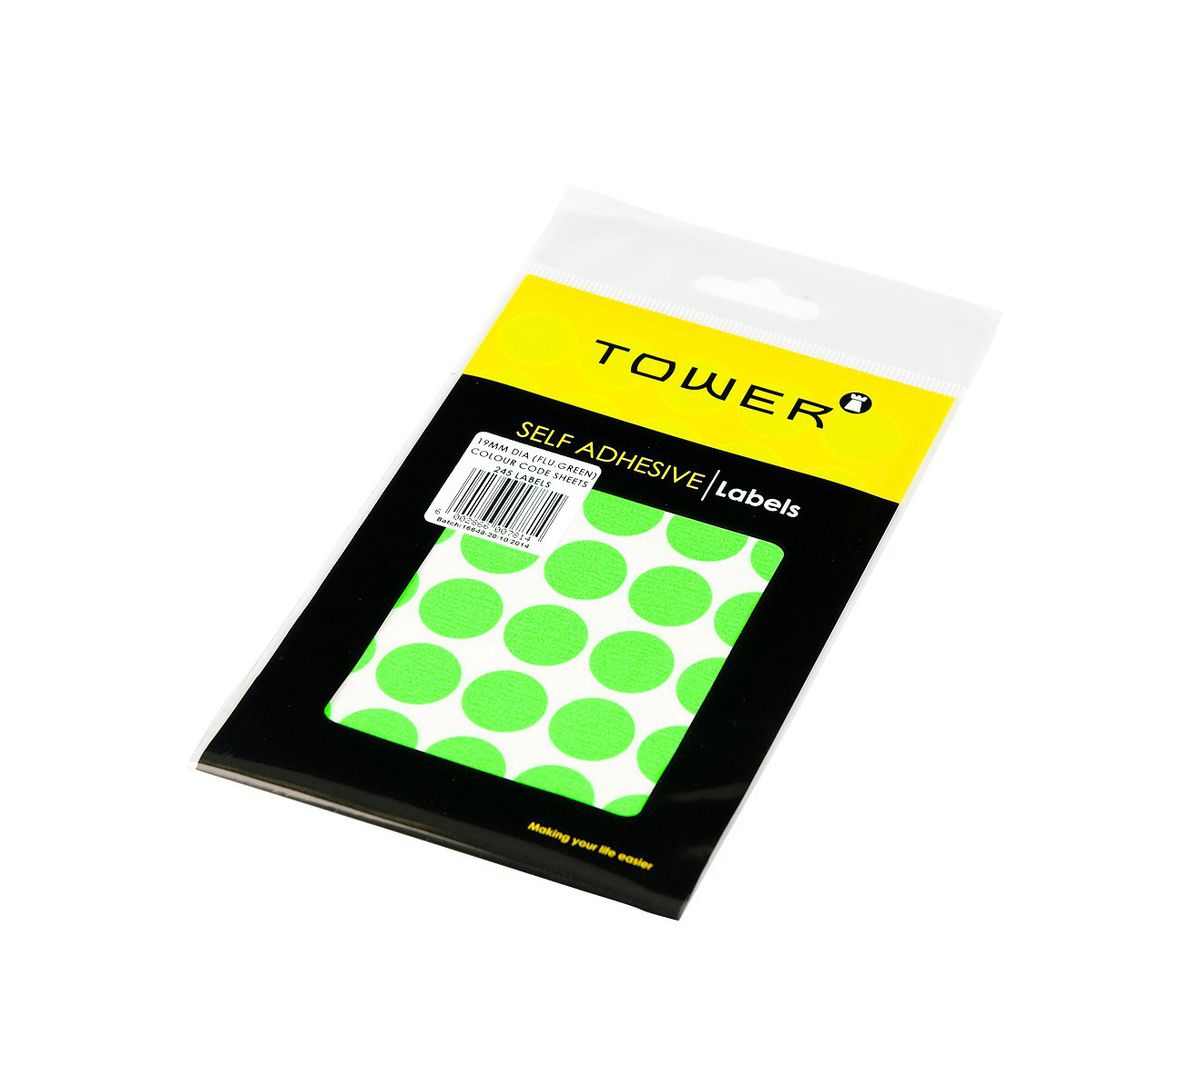 Tower C19 Colour Code Labels (sheets) - Fluorescent Green   Buy ...